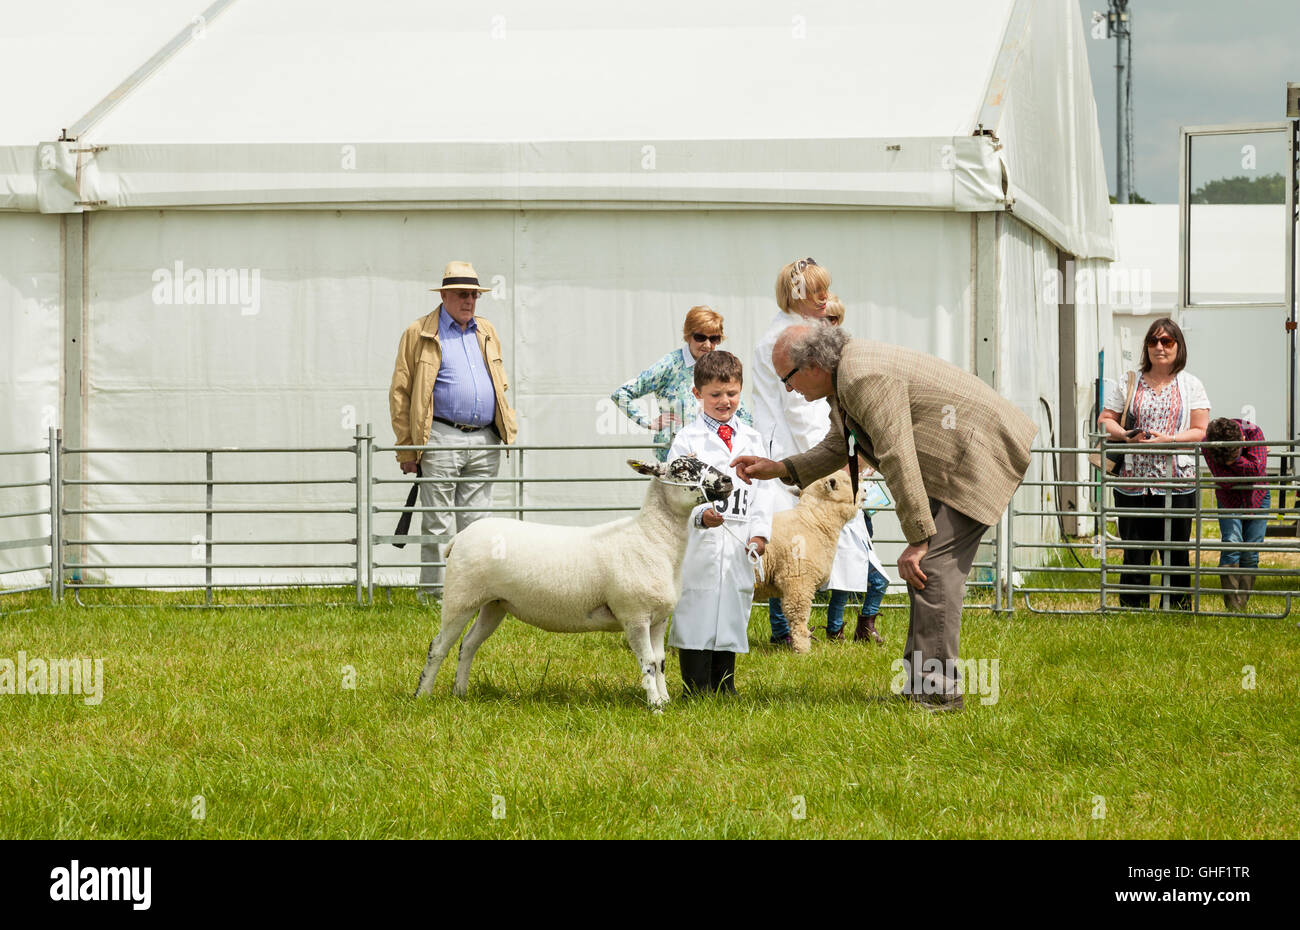 County Show Uk Stock Photos & County Show Uk Stock Images